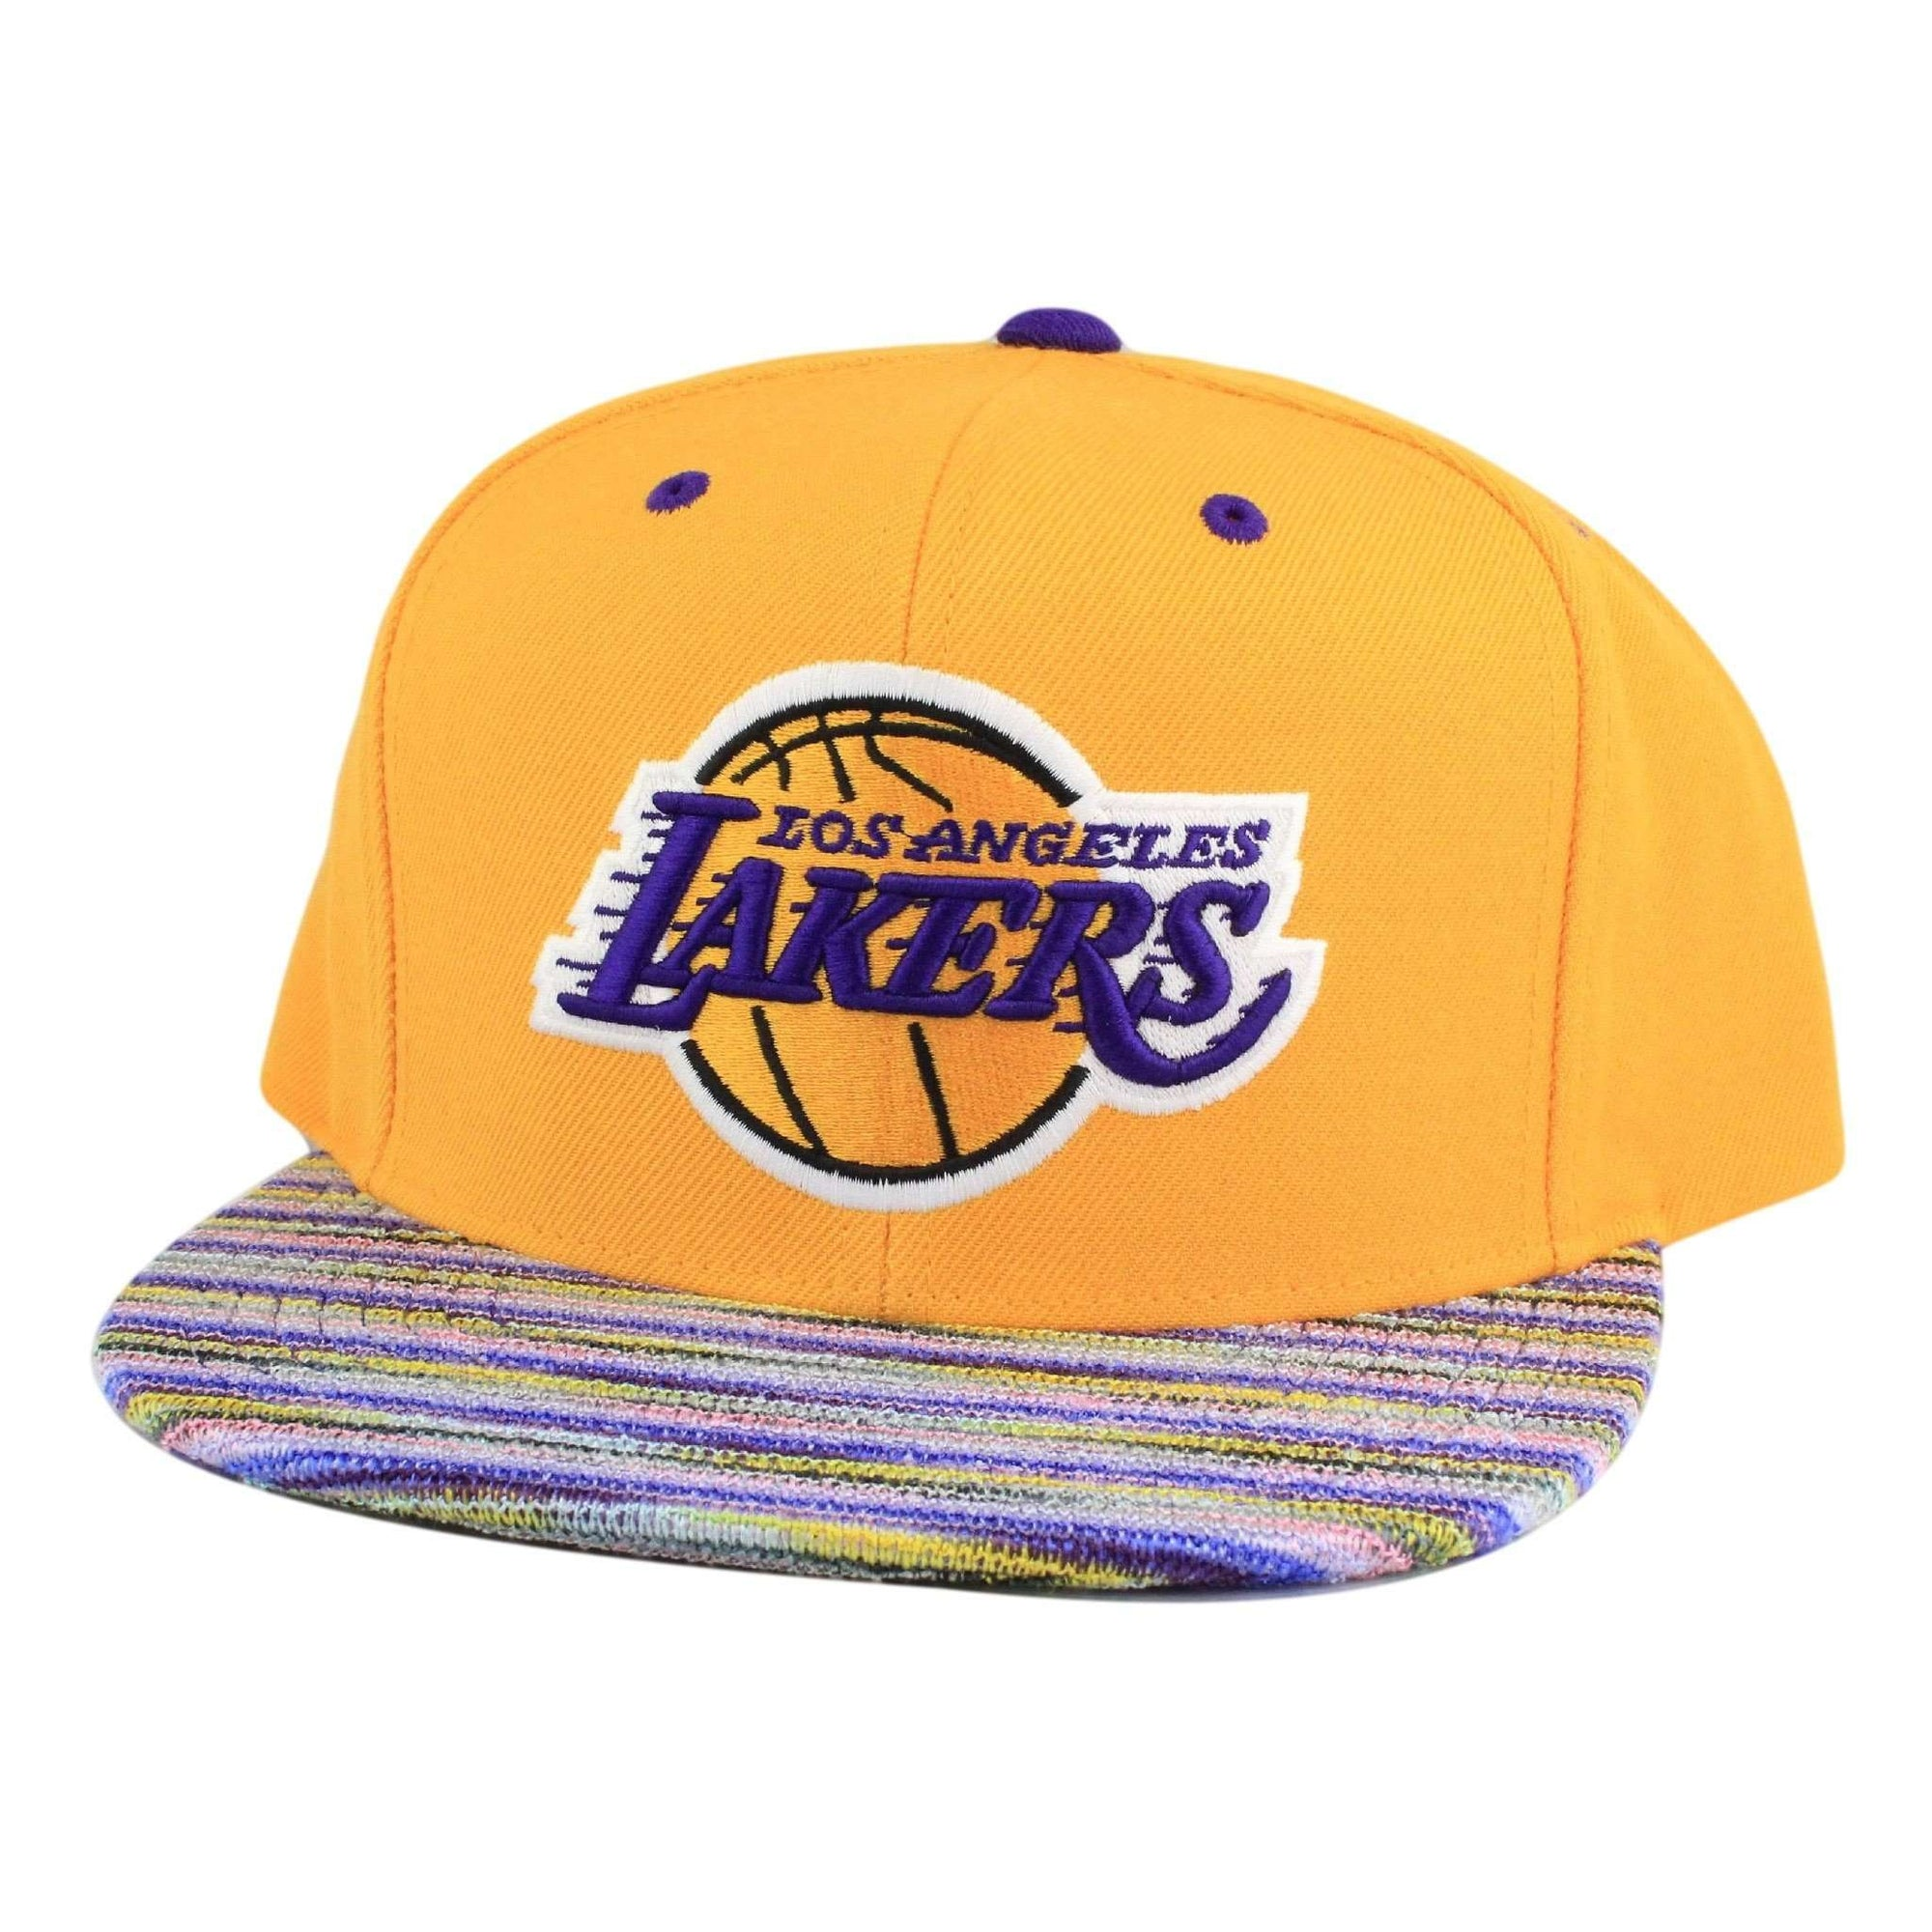 separation shoes ba0b6 9d635 Mitchell and Ness Los Angeles Lakers Knit Visor Yellow Assorted Snapback